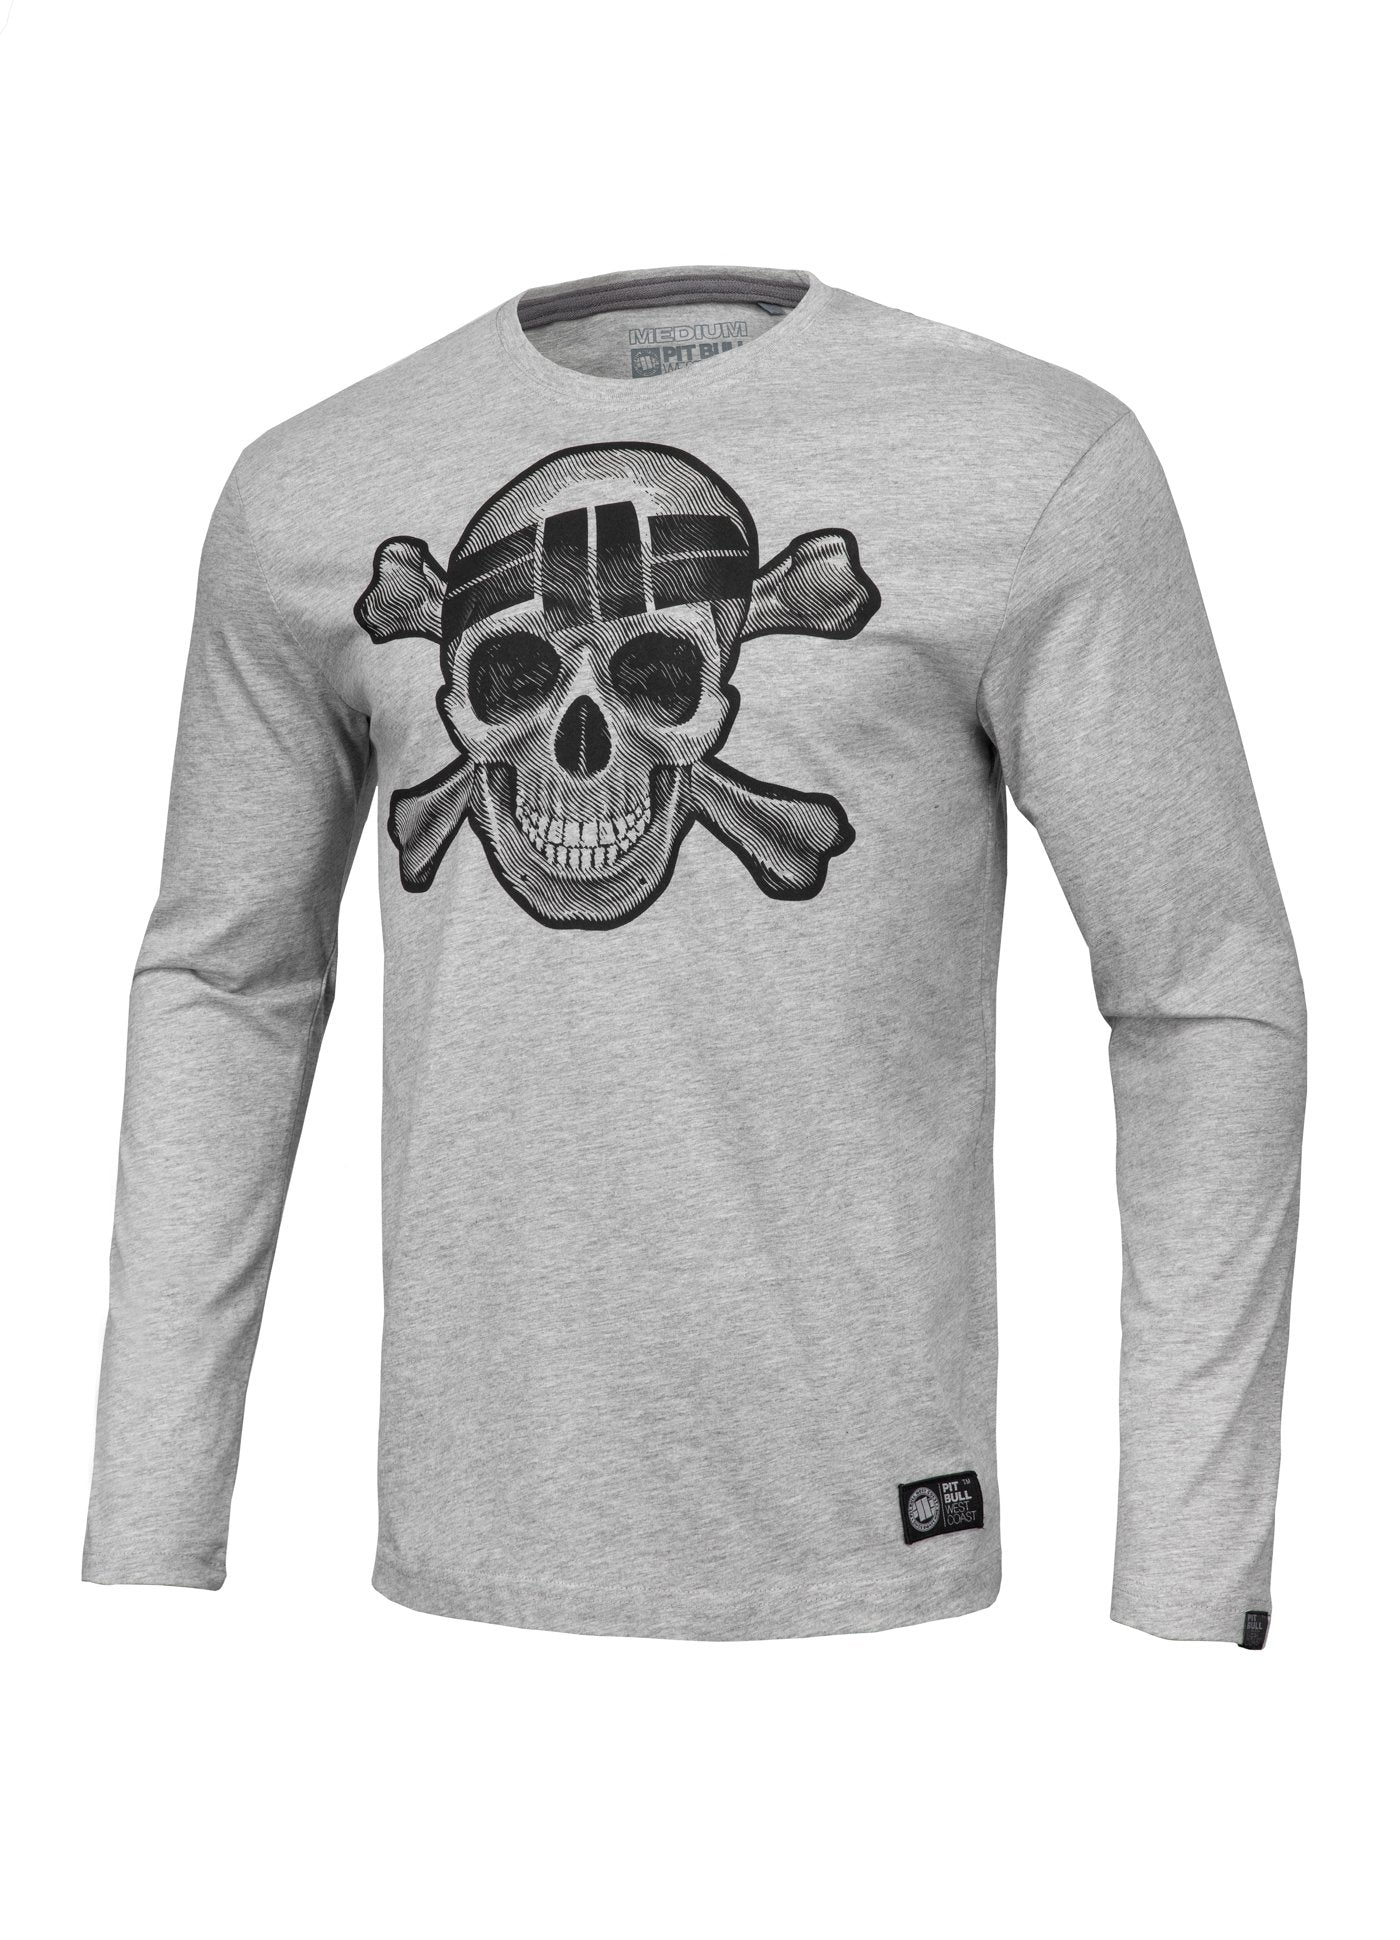 Longsleeve Skull Wear Grey - Pitbull West Coast U.S.A.